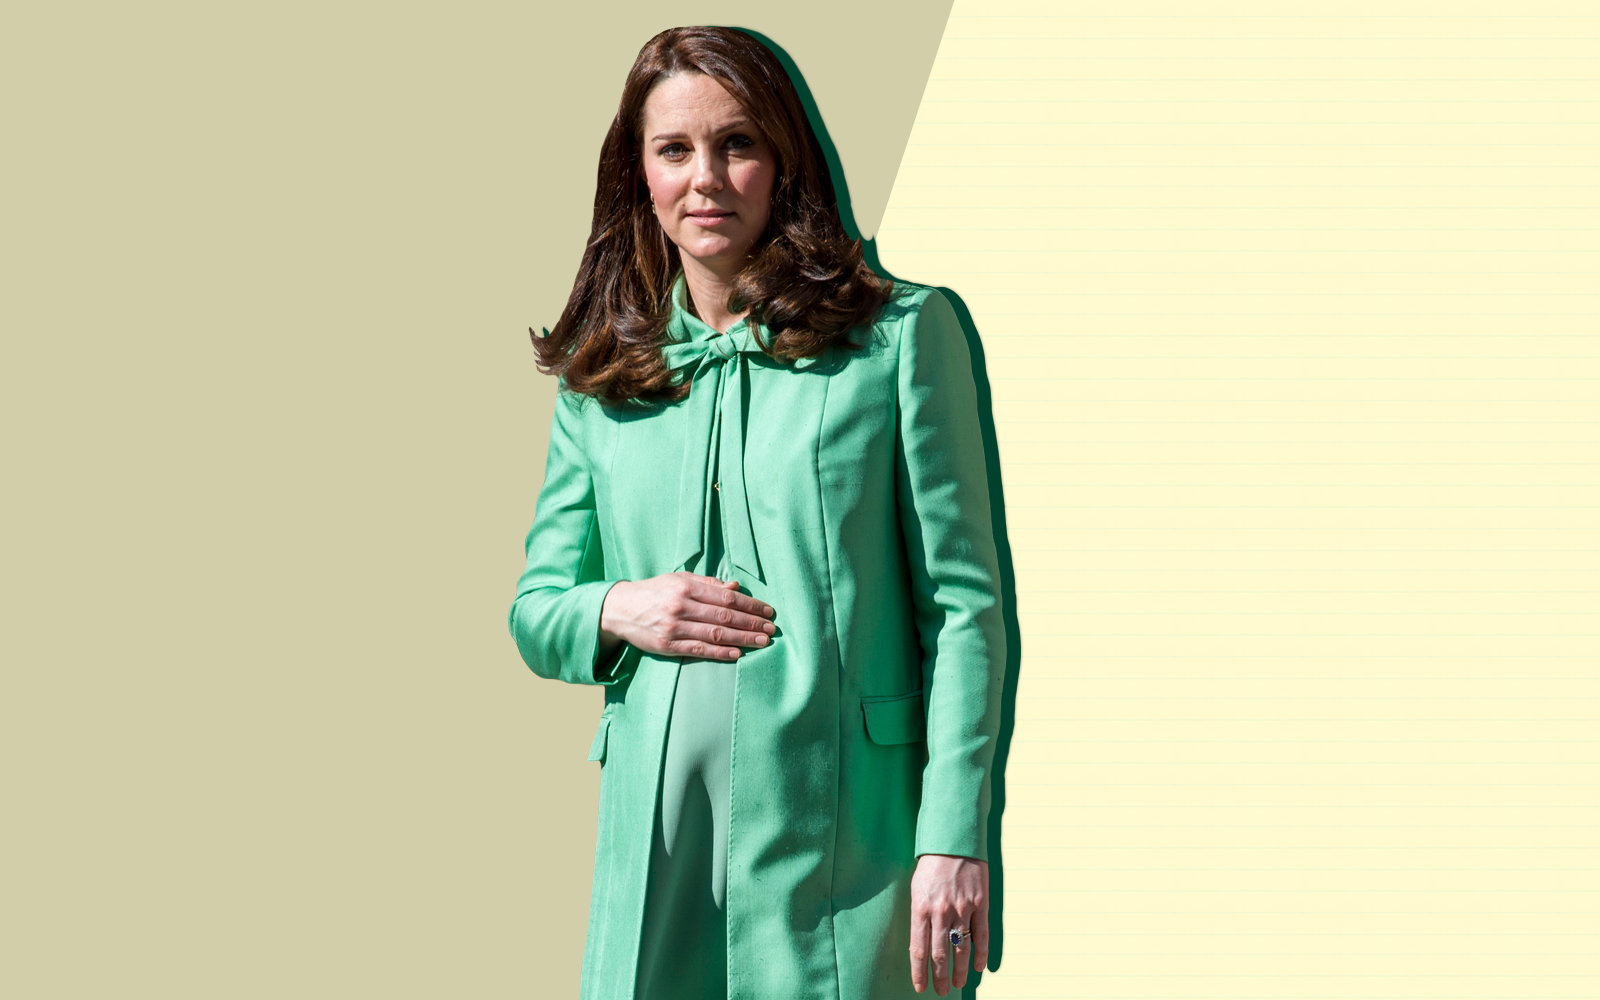 Kate Middleton's third royal birth: Your guide to the Lindo Wing